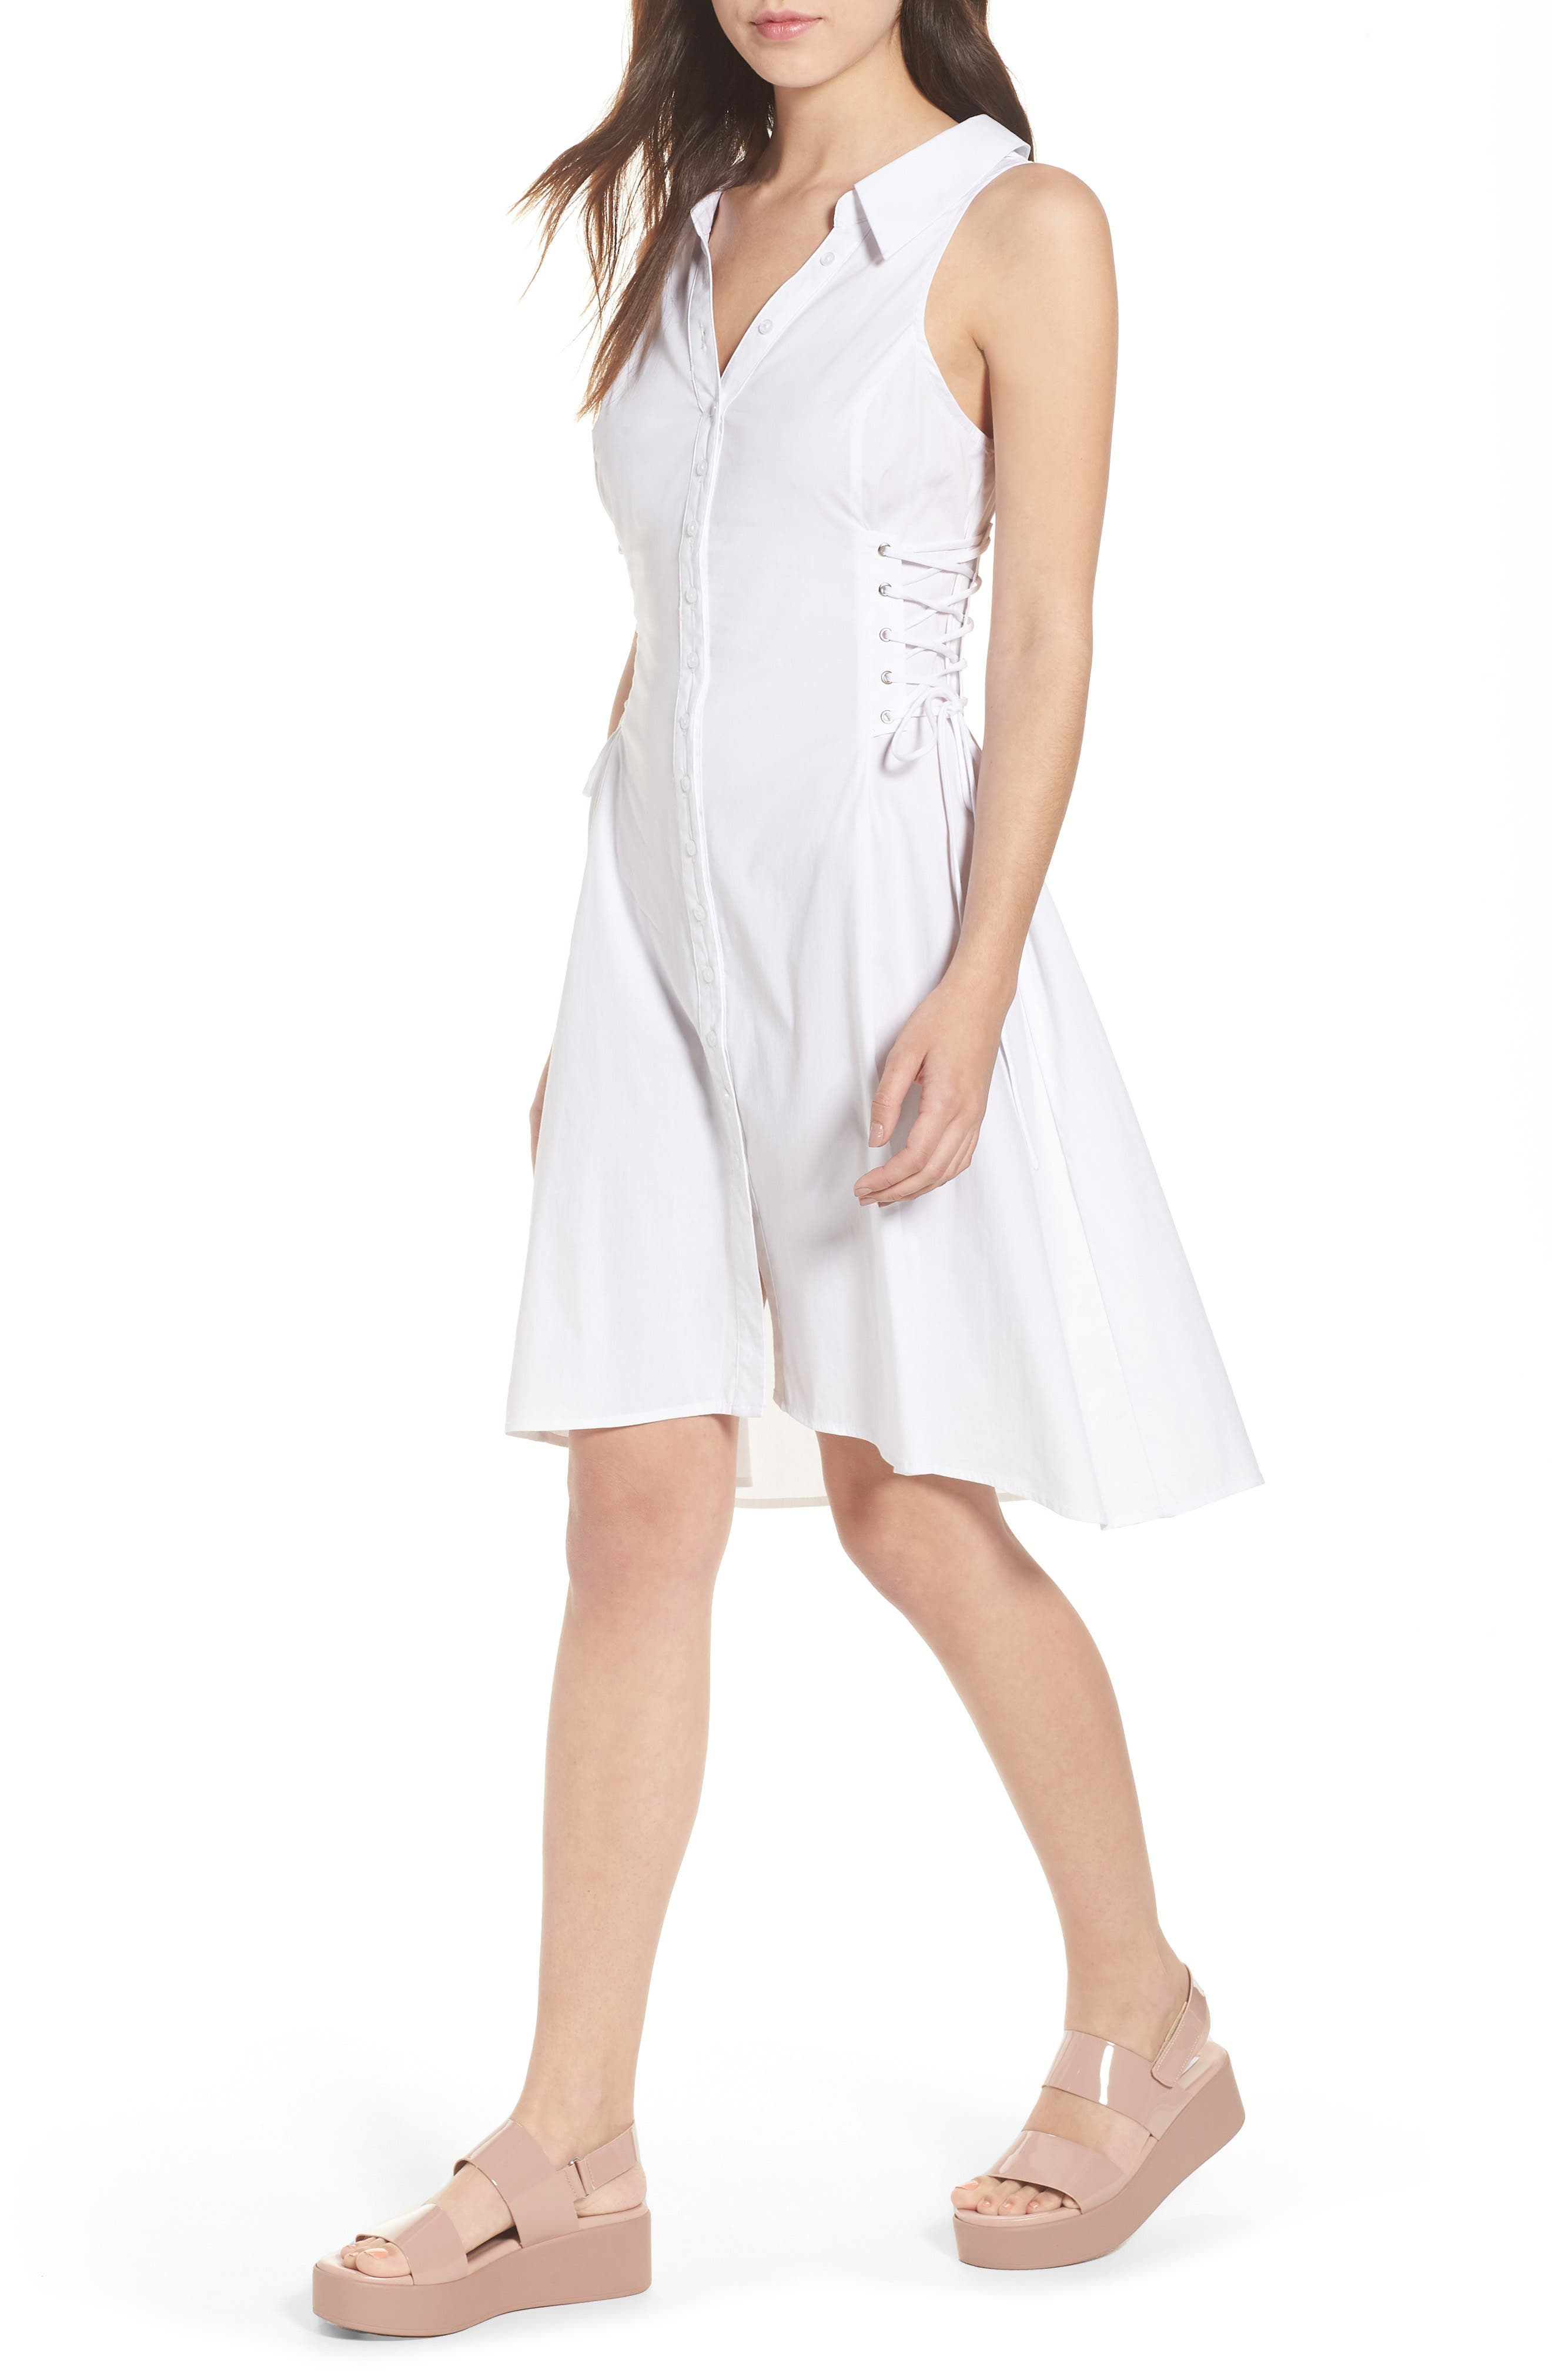 Main Image - ASTR the Label Sydney Lace Side Dress